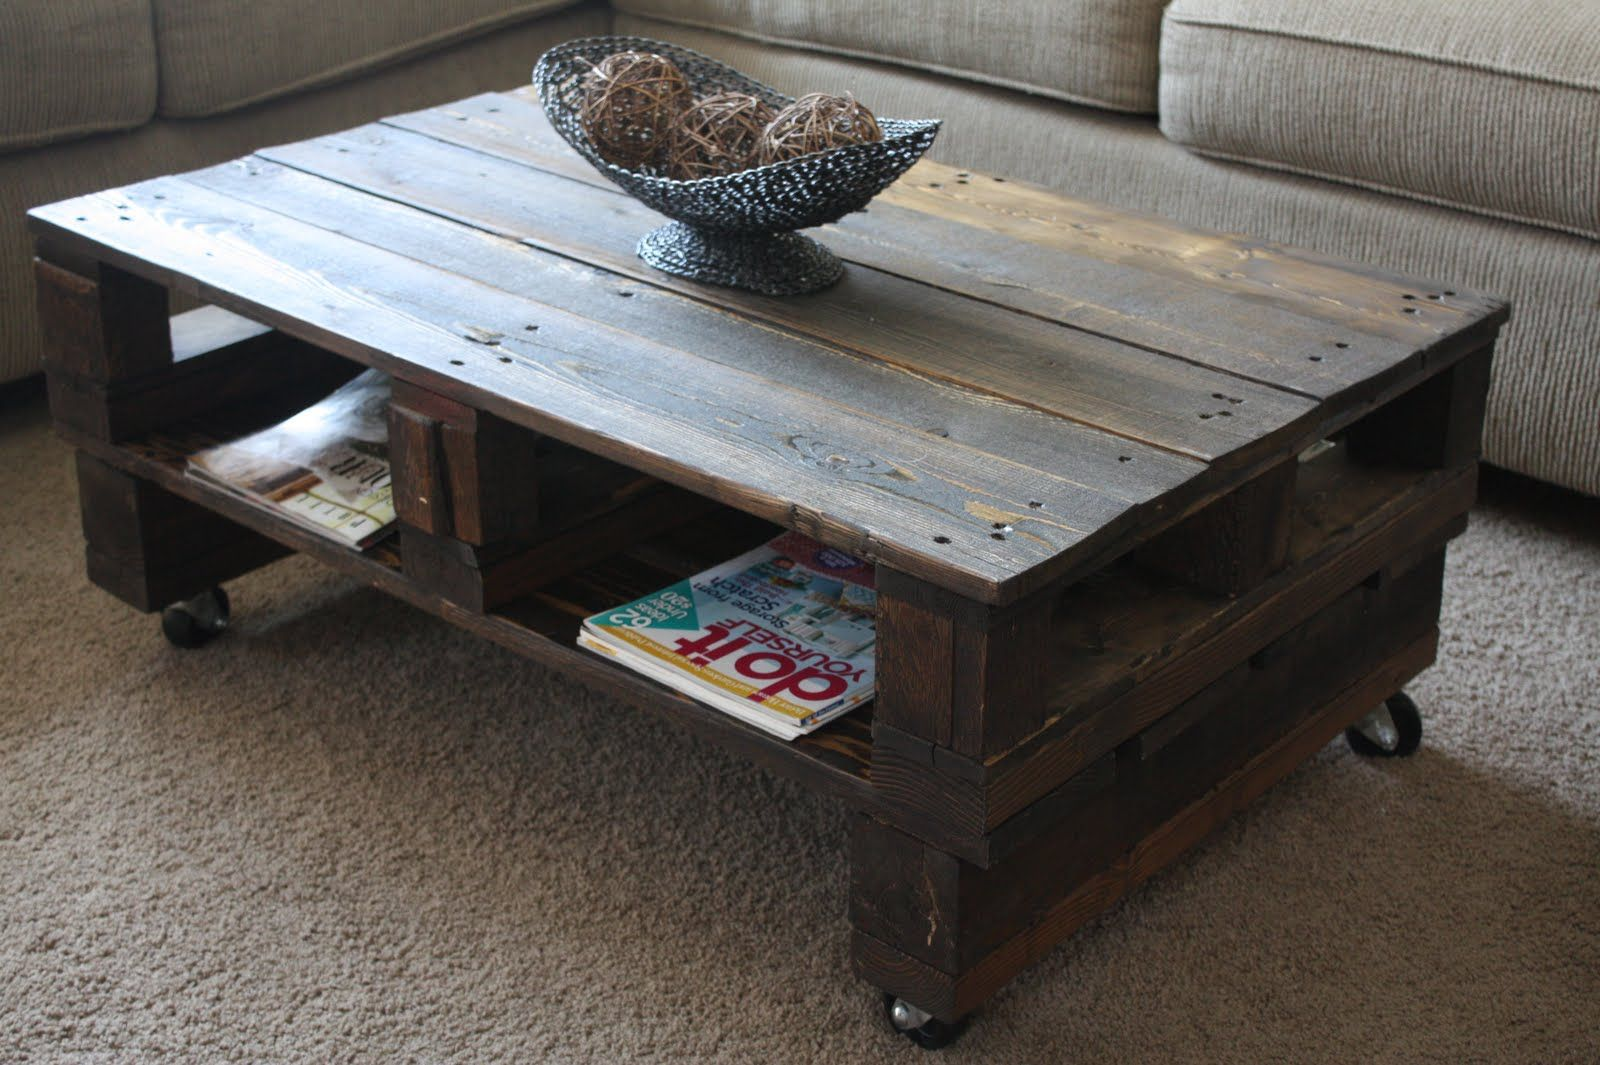 Moveis pallets madeira paletes 011 3975 2306 mesa palets cadeira what can you make with a wood pallet easy diy craft tutorial ideas for home decor and craft projects design your space with upcycled wood pallets geotapseo Gallery